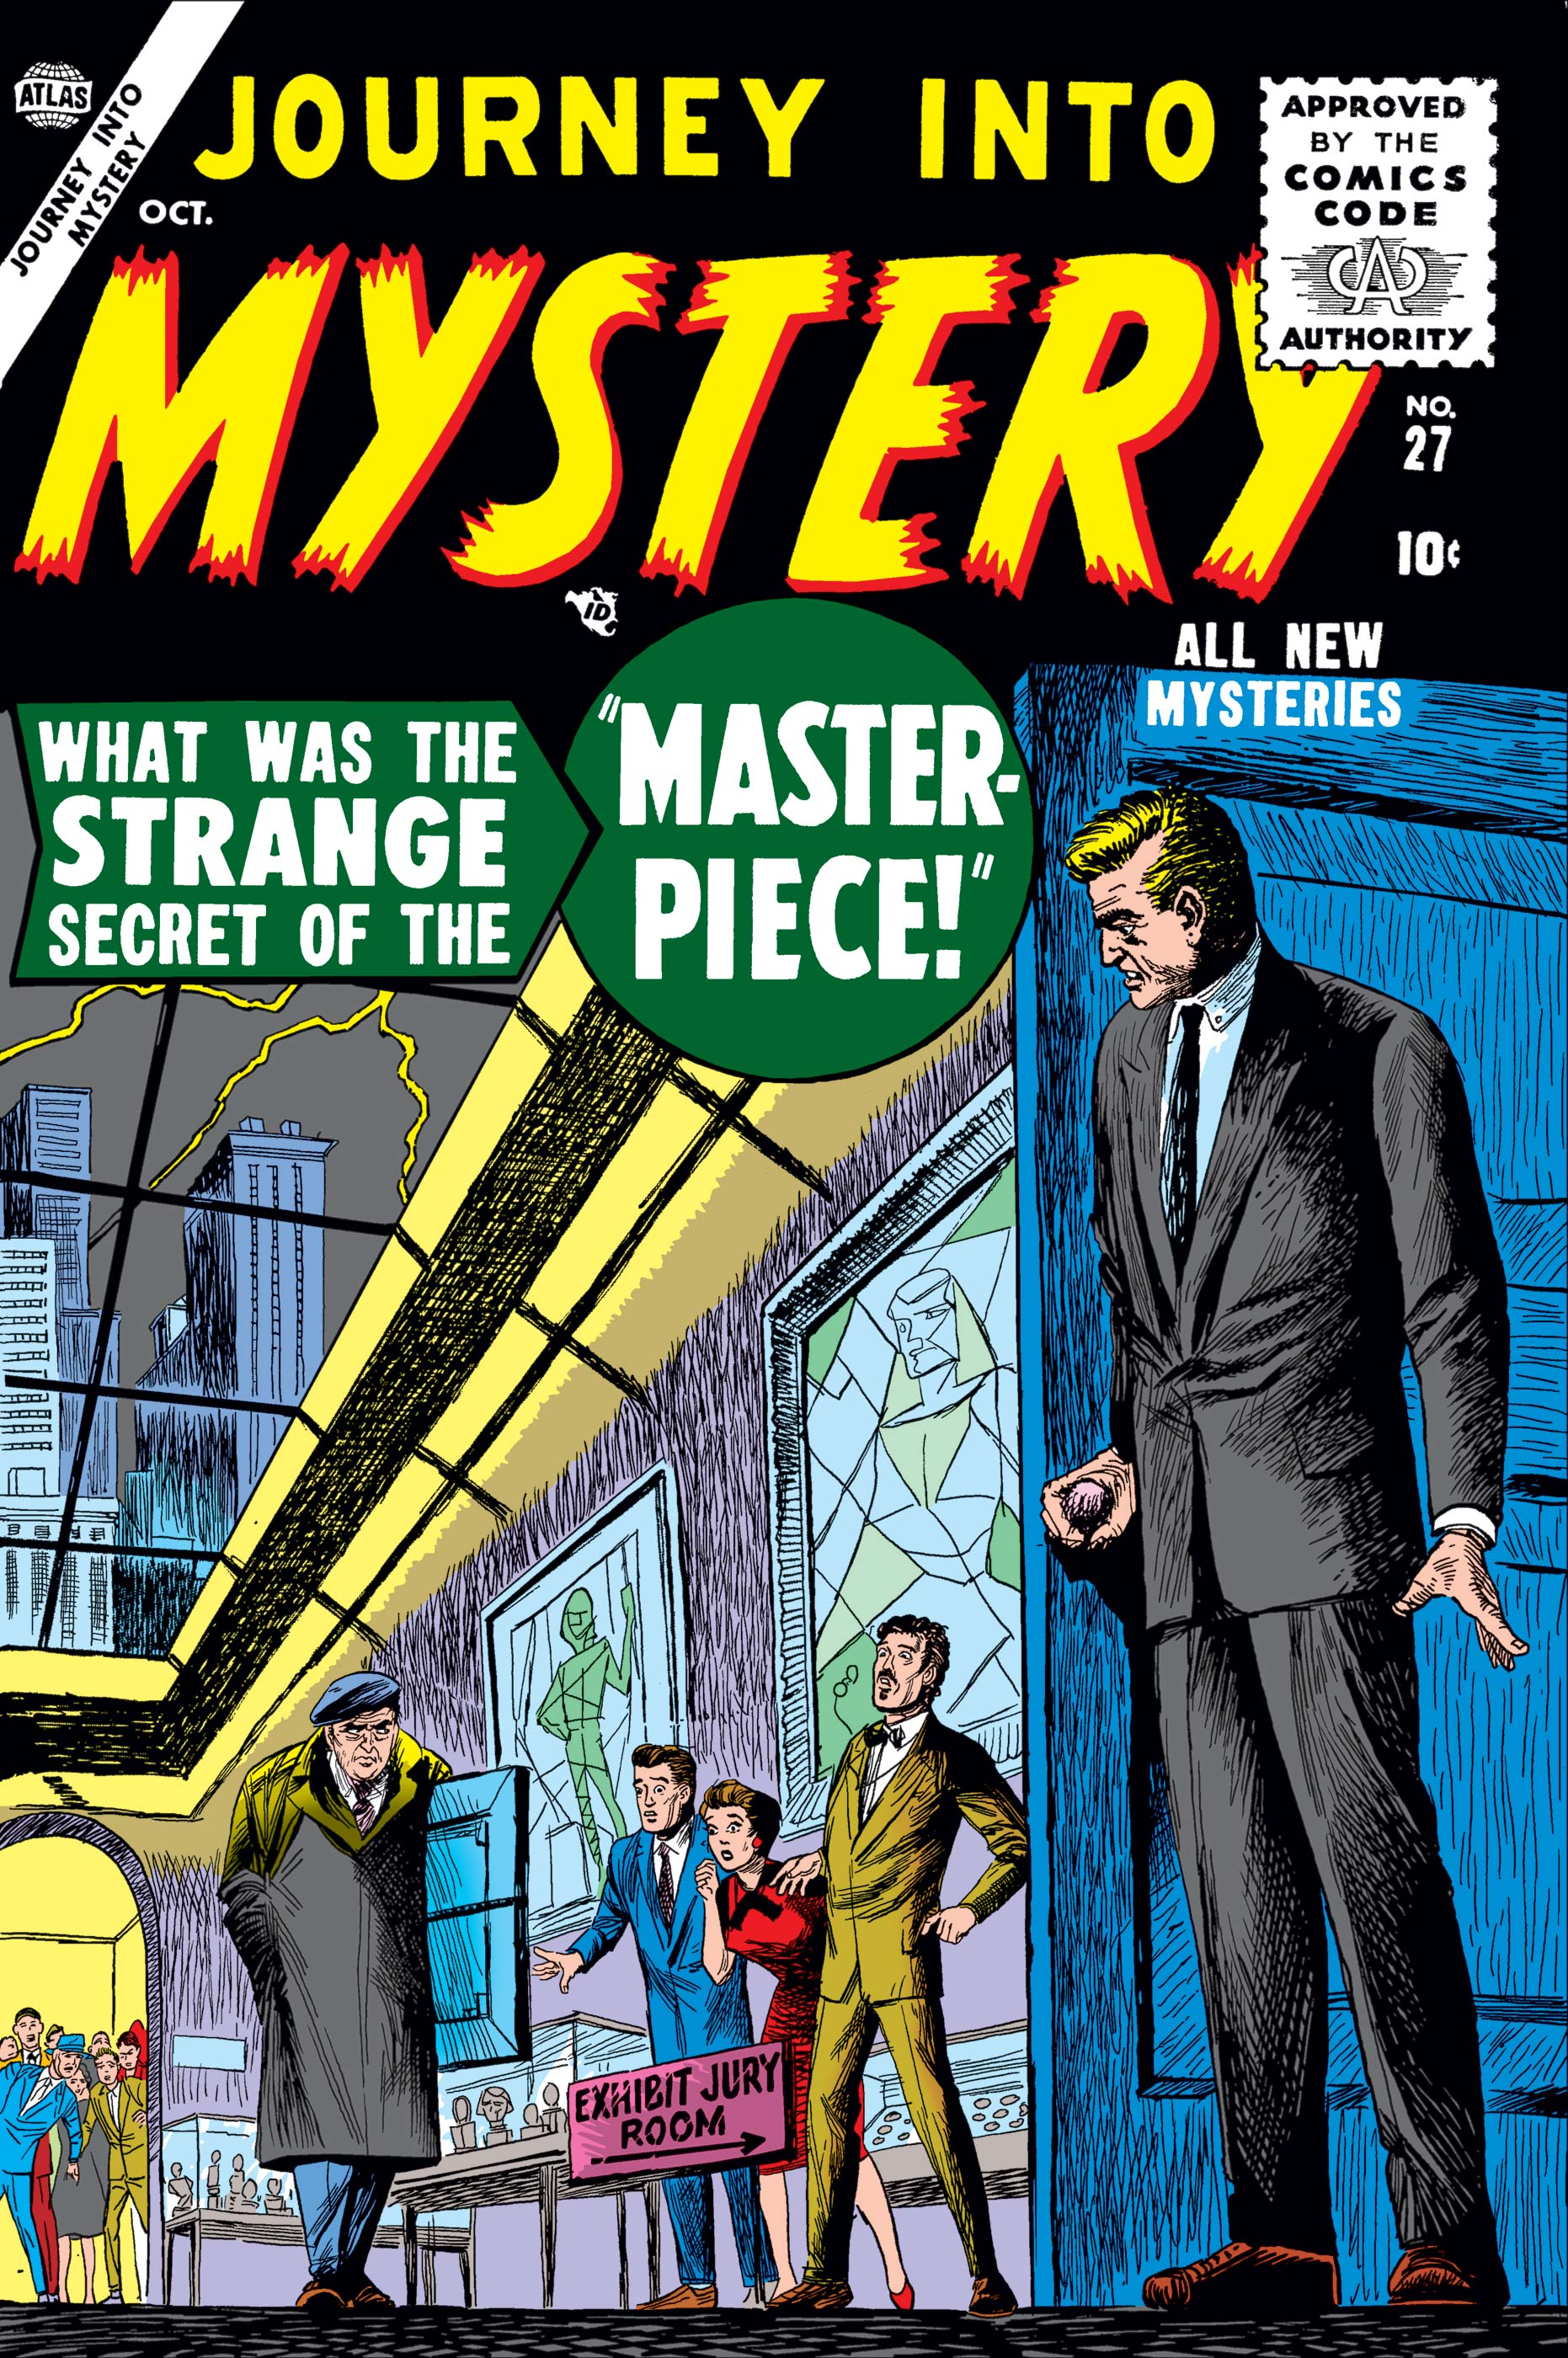 Journey Into Mystery (1952) #27